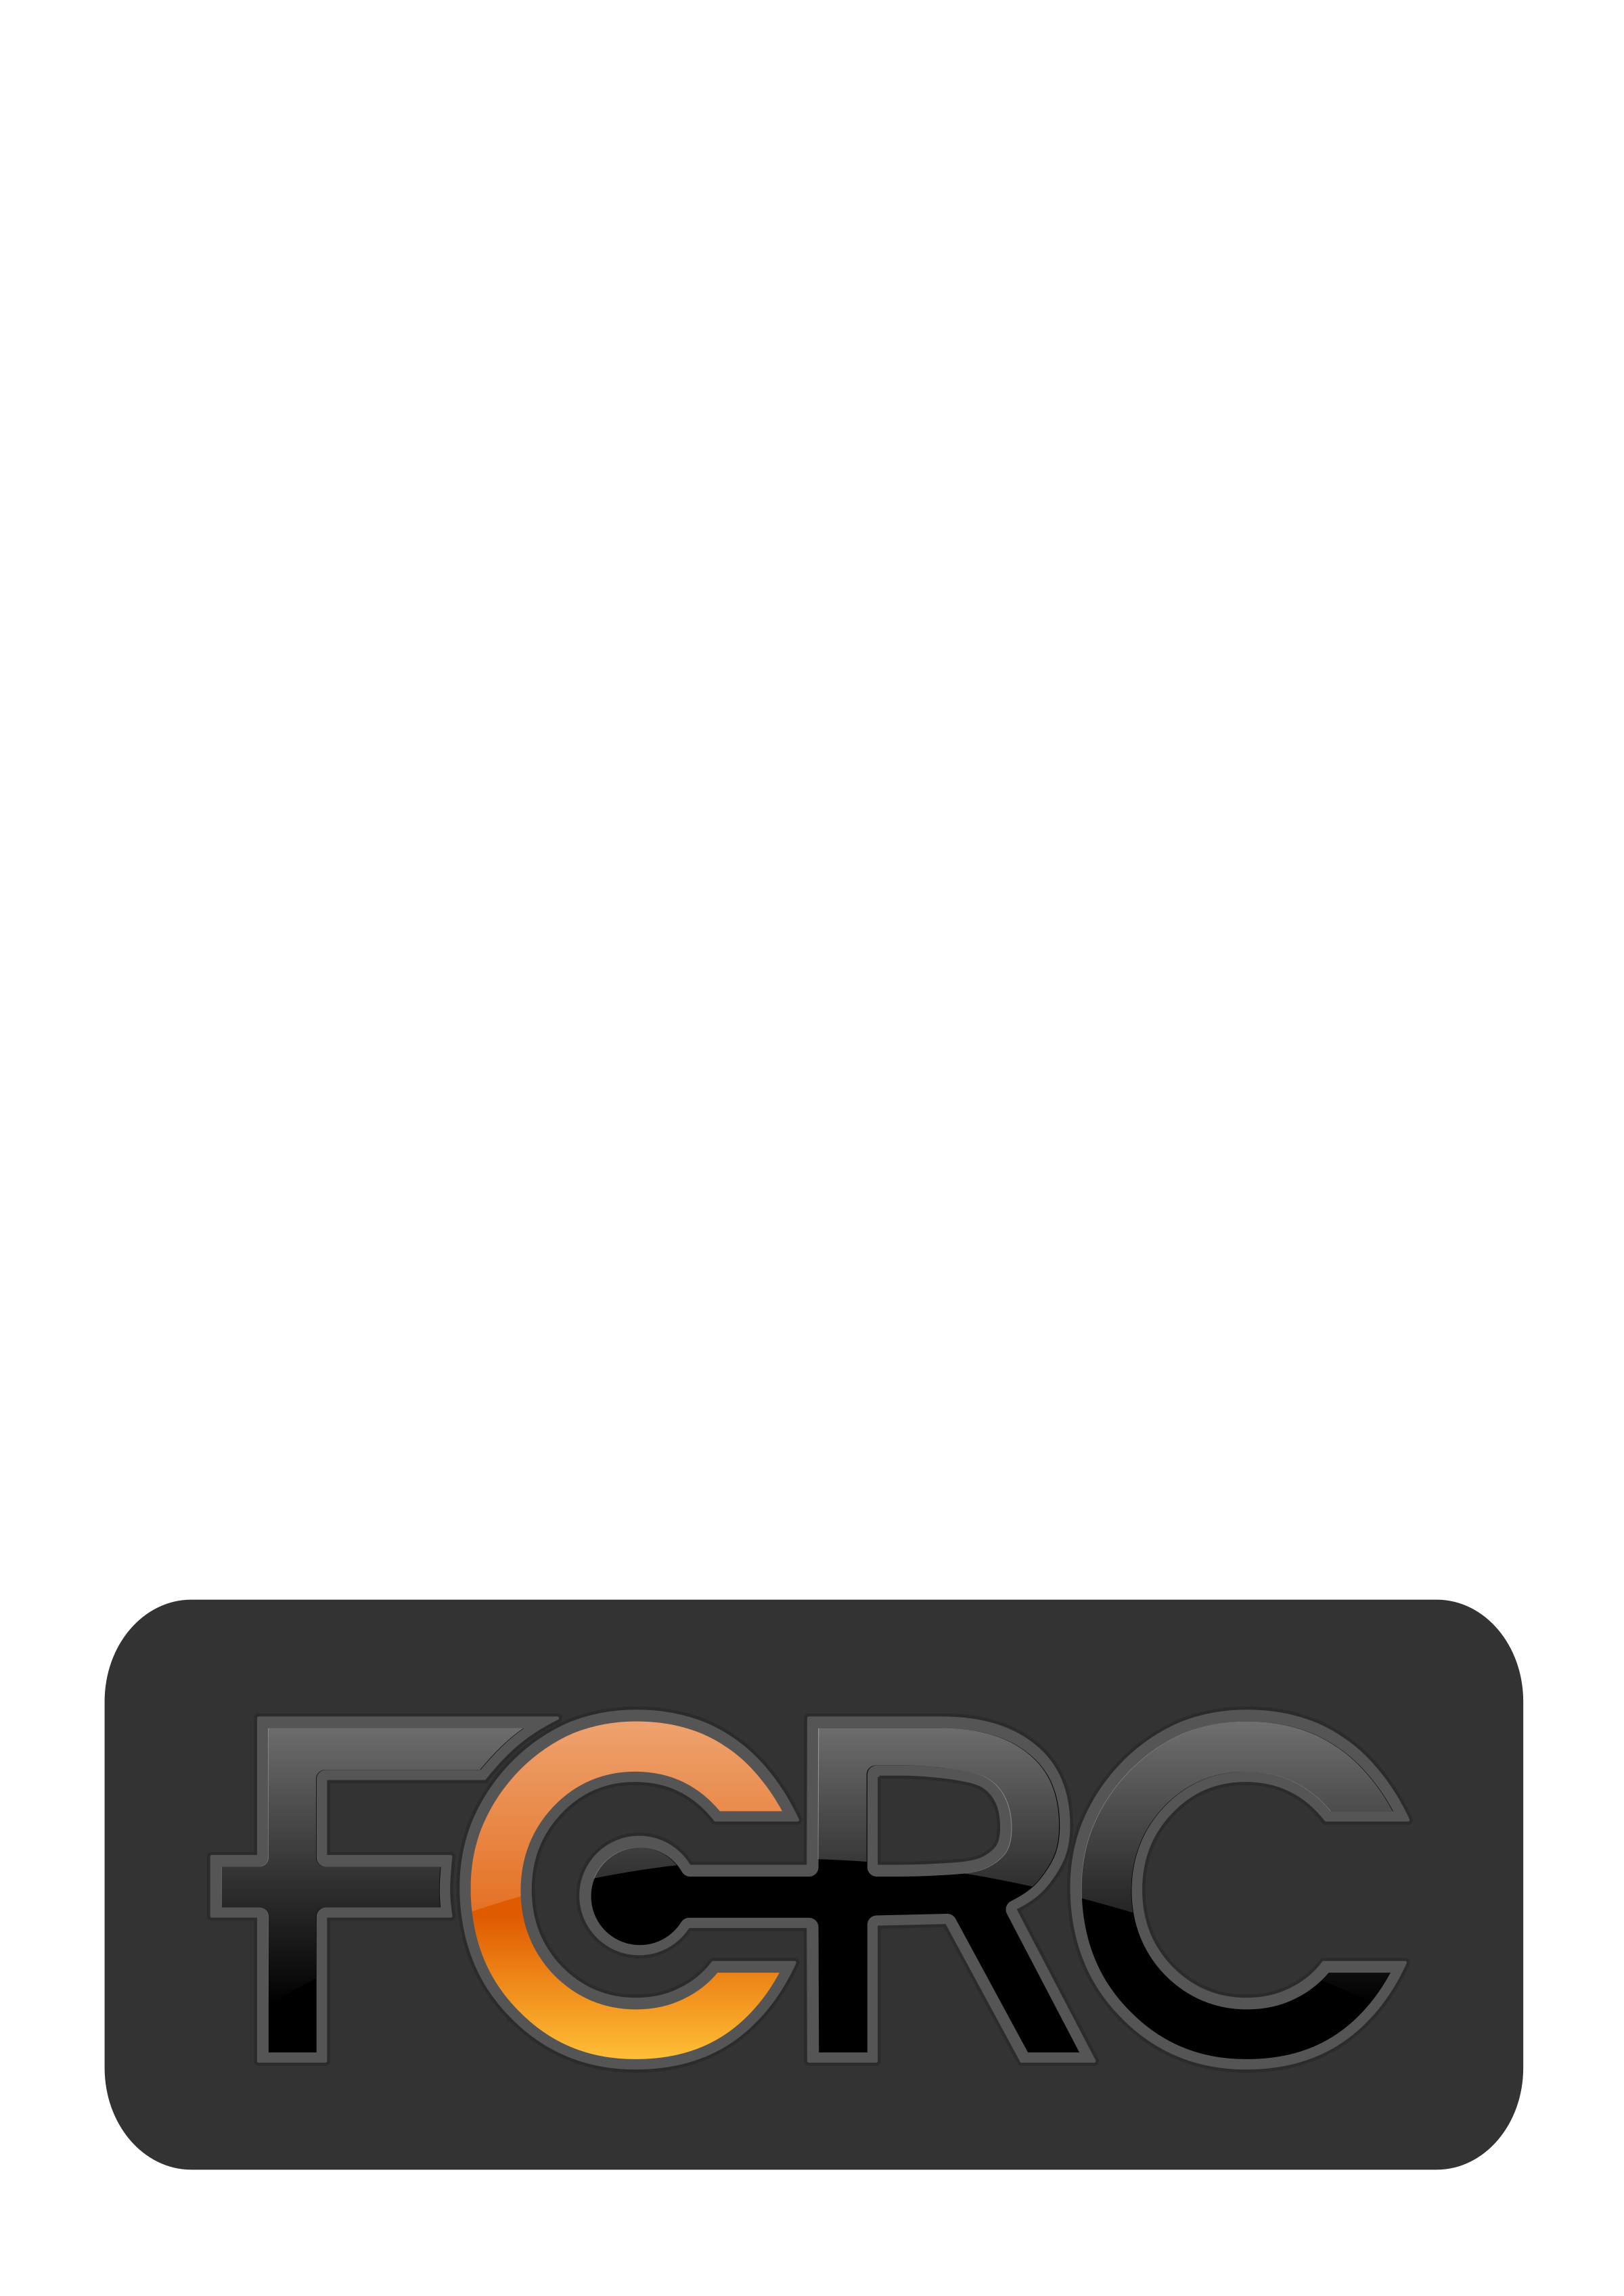 FCRC logo text 4 by timeth